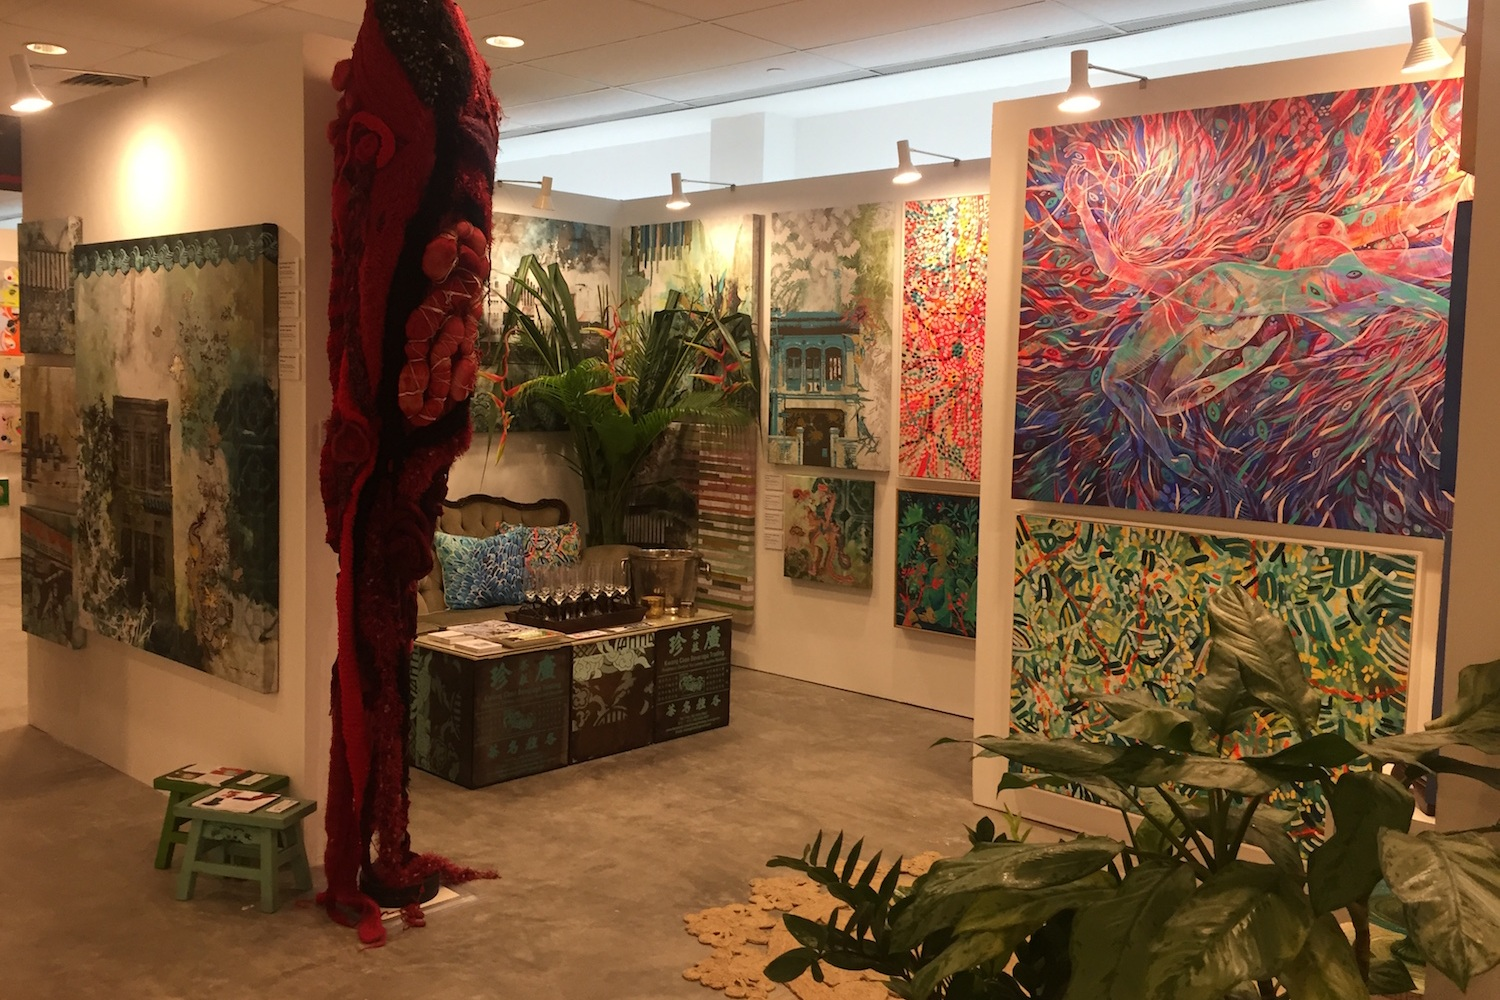 Affordable Art Fair - 2016, Singapore